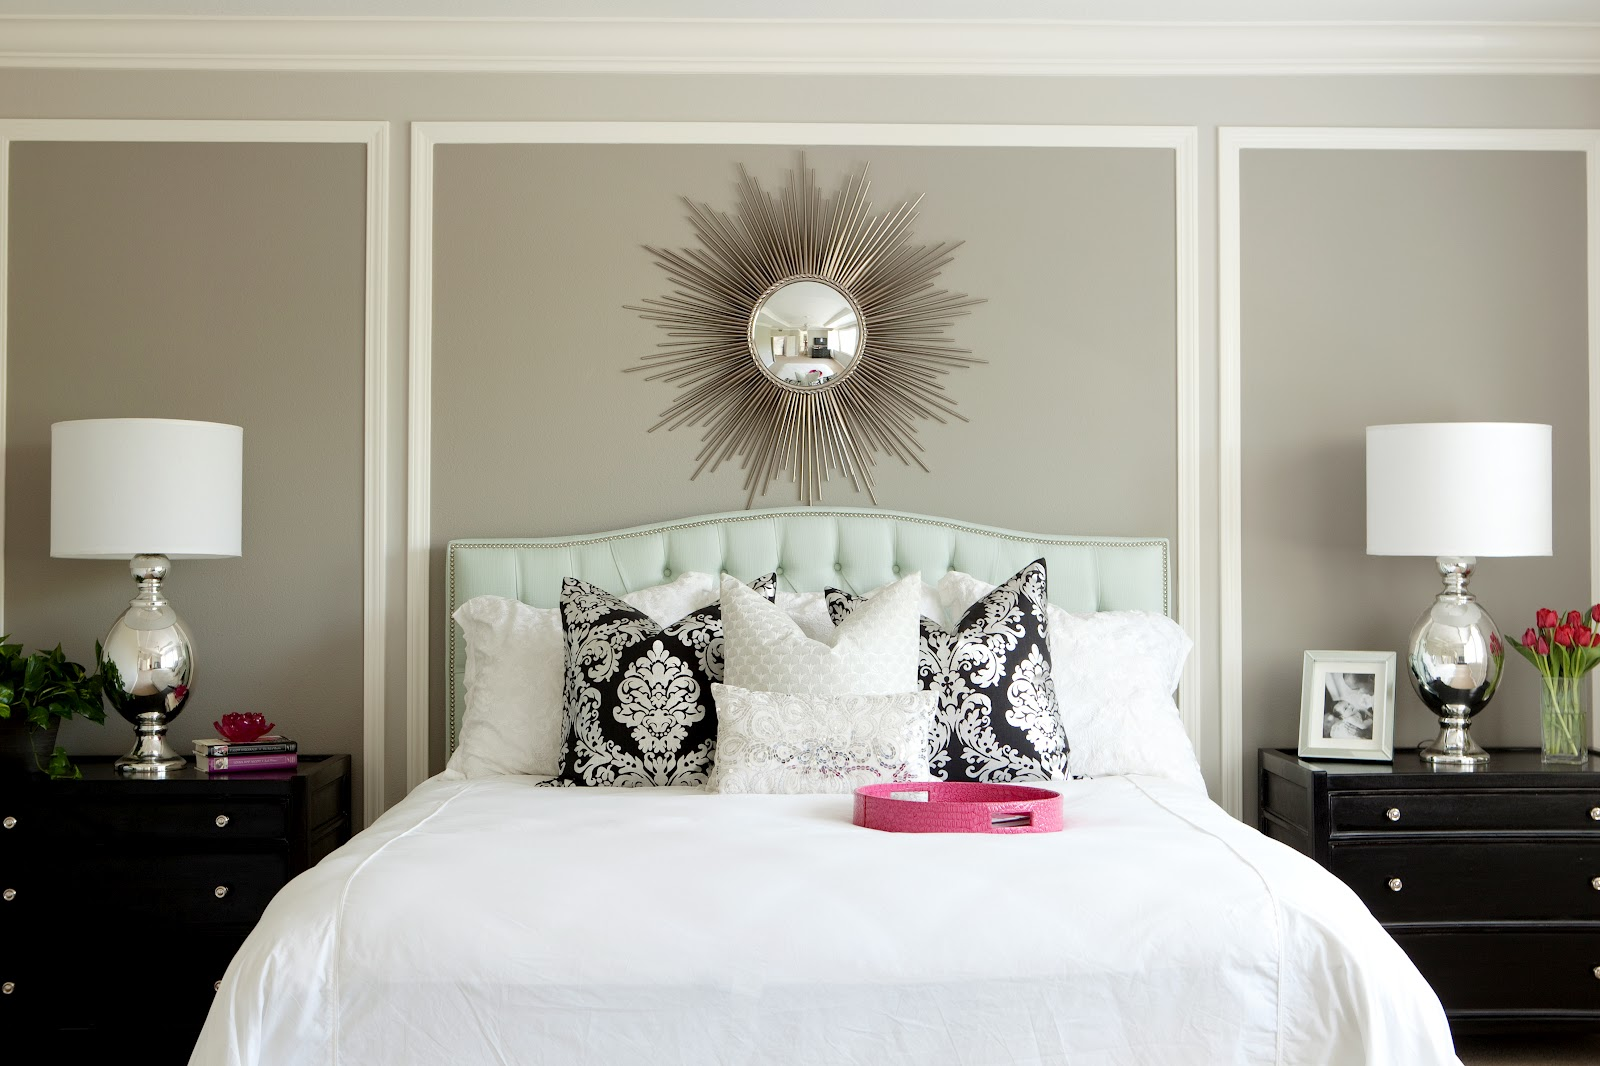 Attractive Relaxing Bedroom Color Part - 12: WHAT YOU WANT IN, AROUND, AND OUT OF THE BEDROOM.